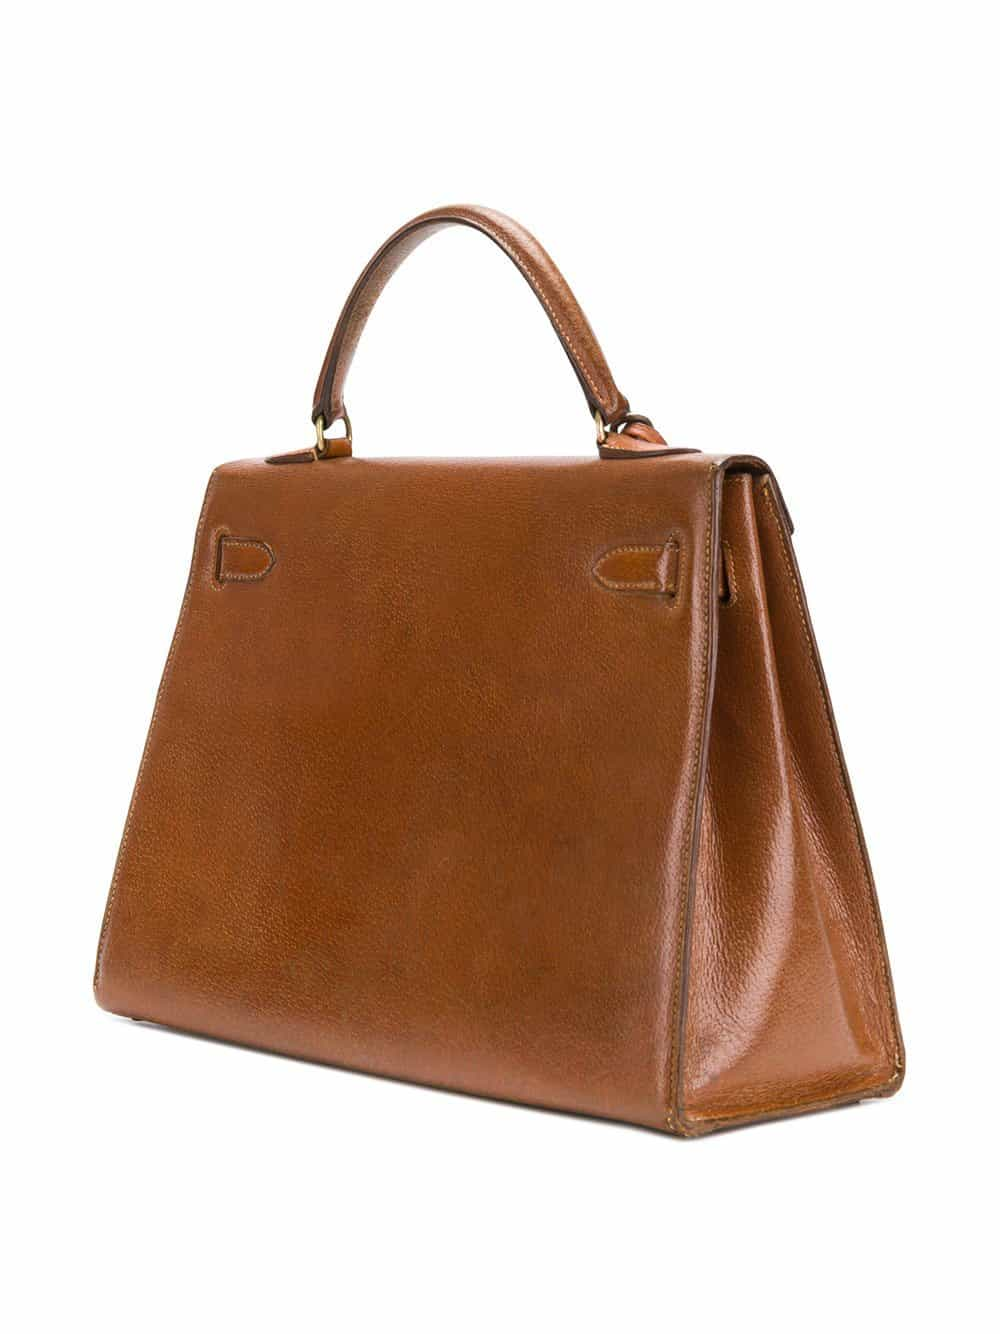 Rare Hermès vintage Kelly Sellier gold Pecari leather 60s collector